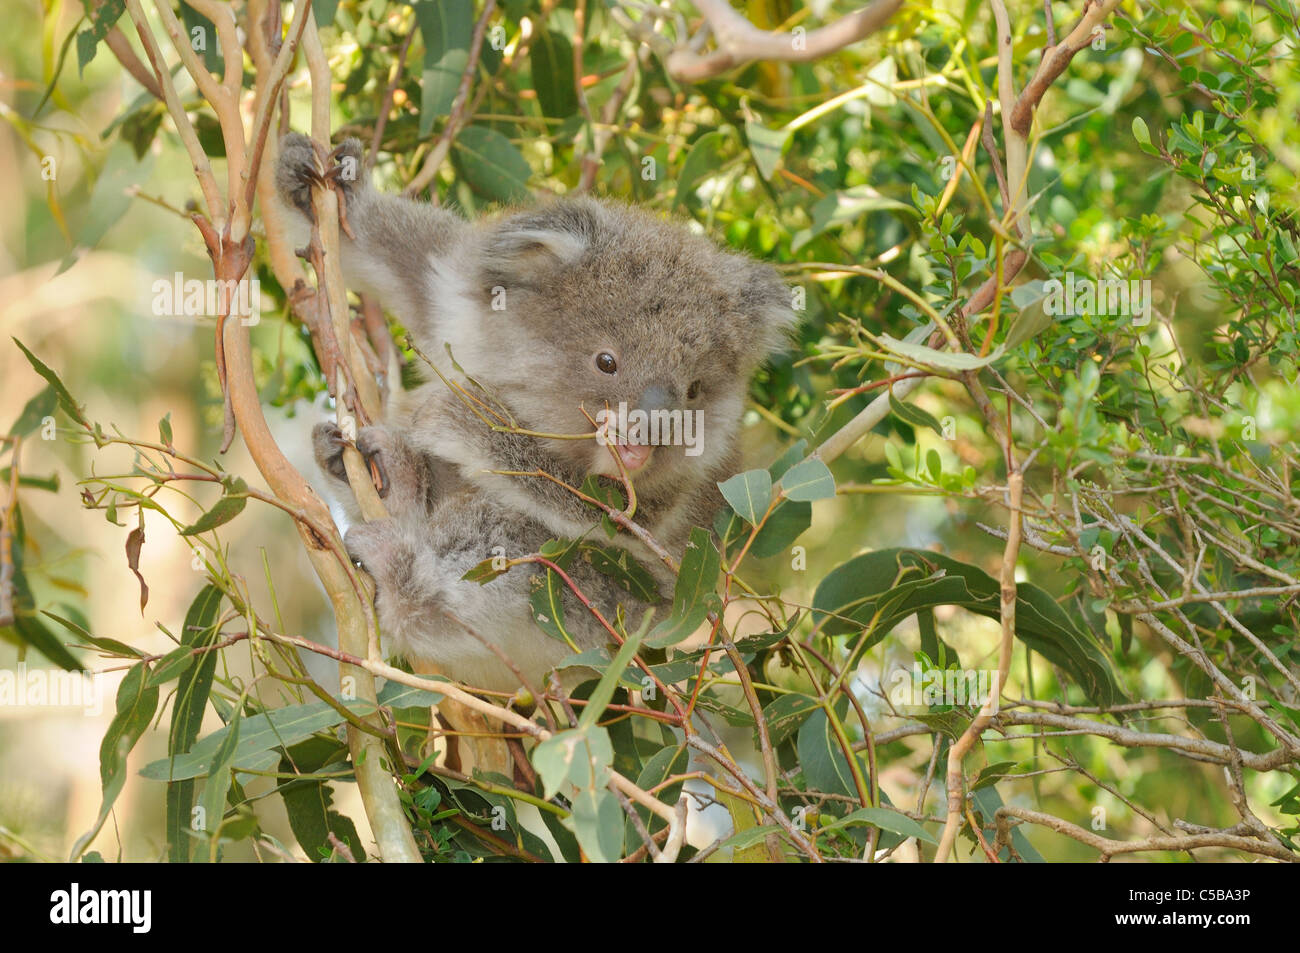 Koala Phascolarctos cinereus Young in tree Photographed in Victoria, Australia - Stock Image